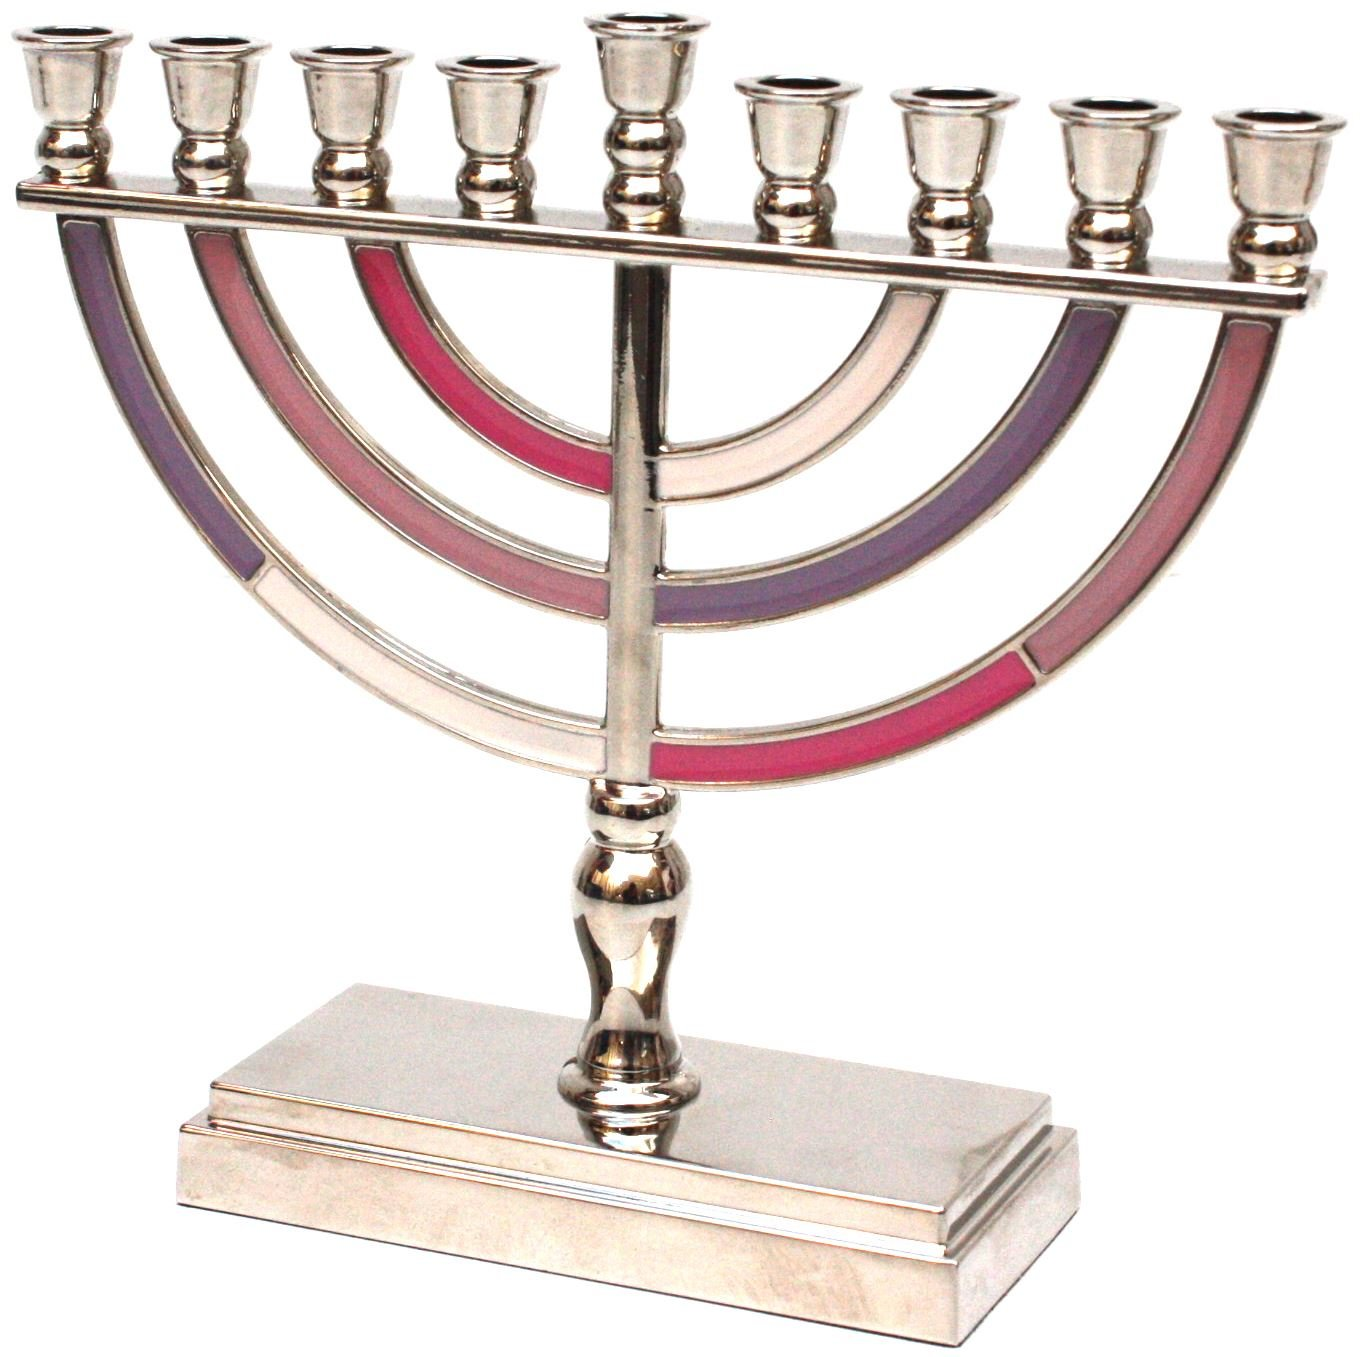 Hanukkah Menorah with 9 Branches, Grey, Black and White, 14 centimetres Meir Cohen Ltd